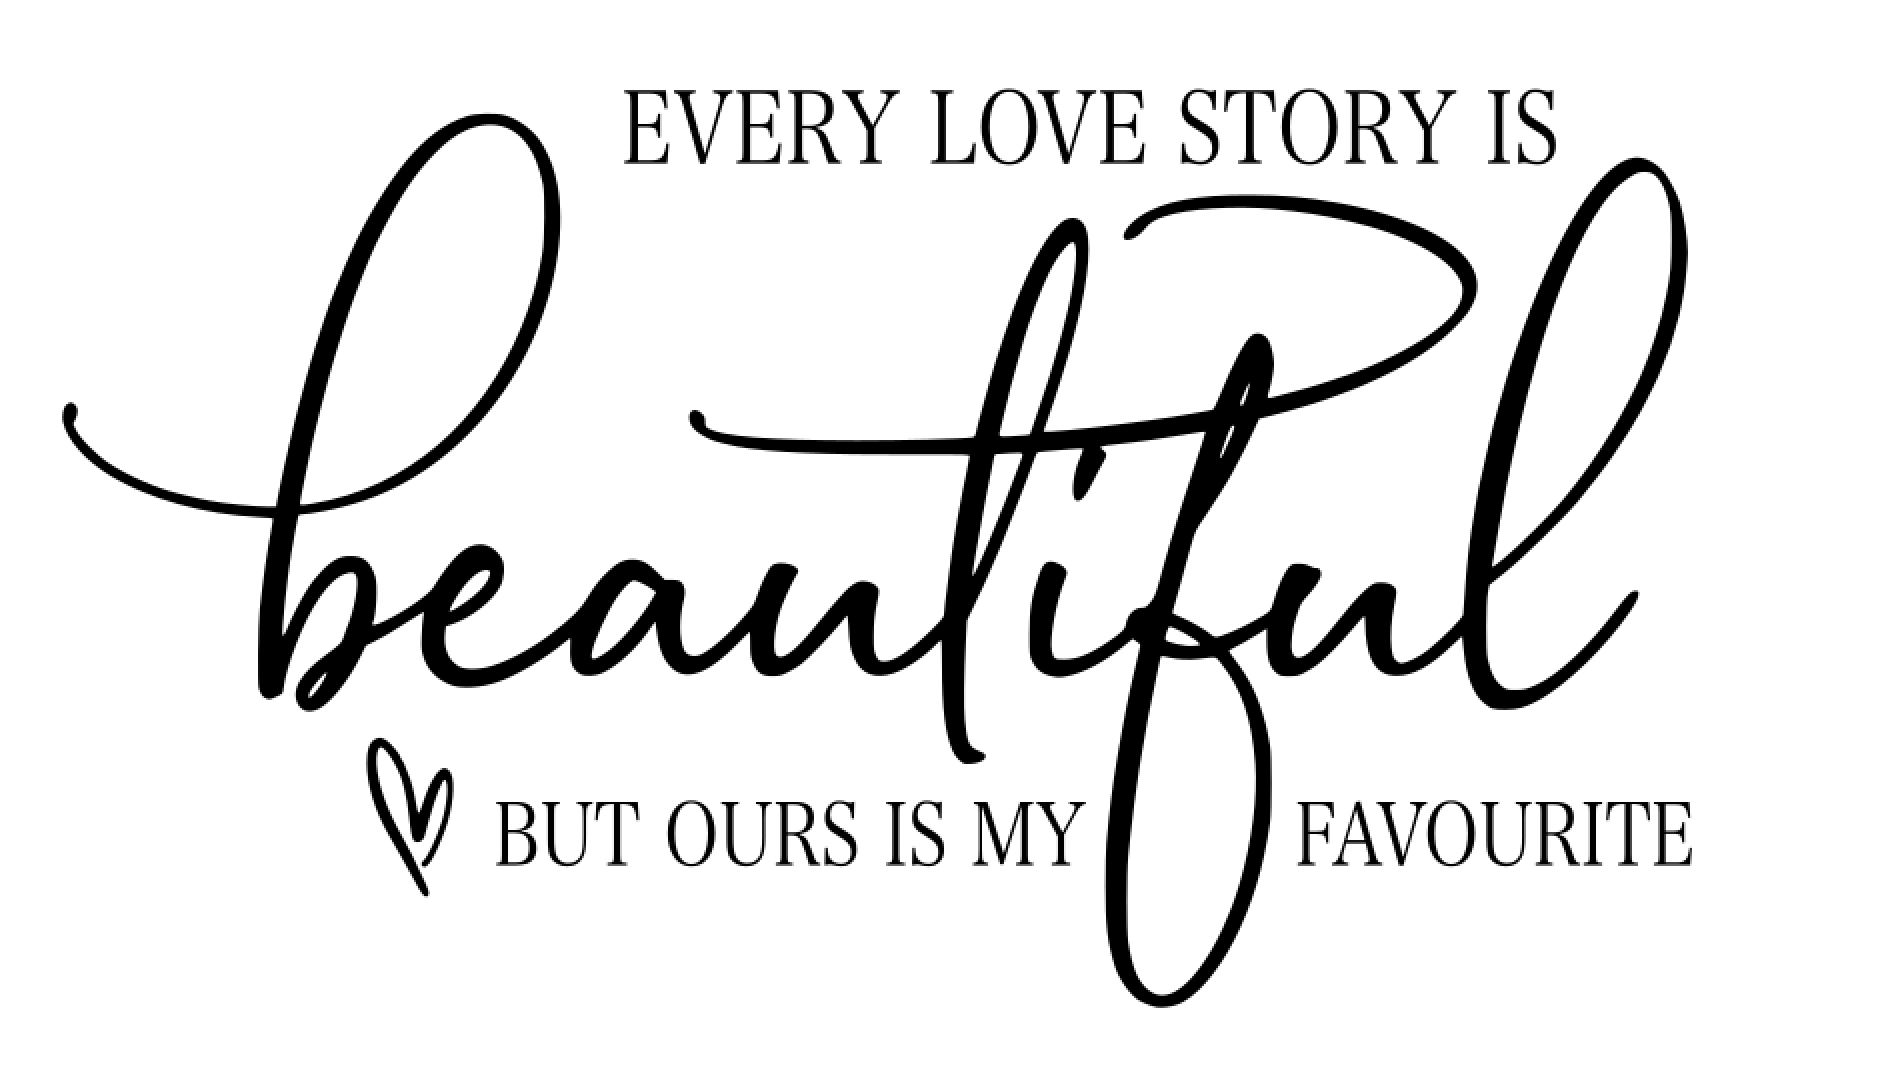 55 Every love story is beautiful...